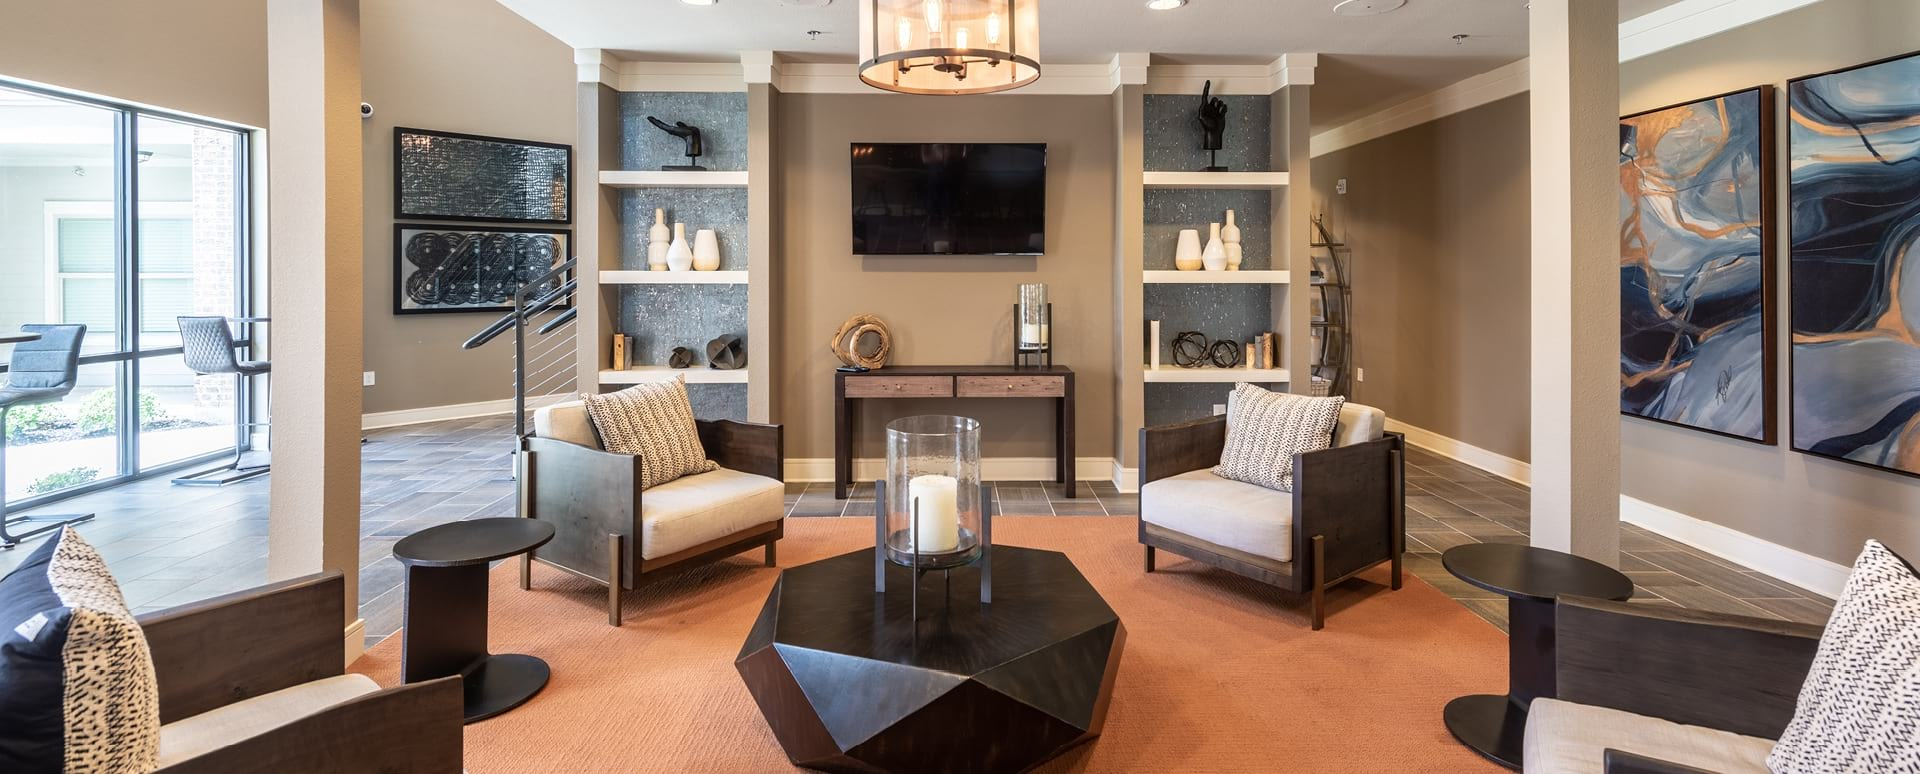 Apartment clubhouse with HDTVs at Cortland Presidio East